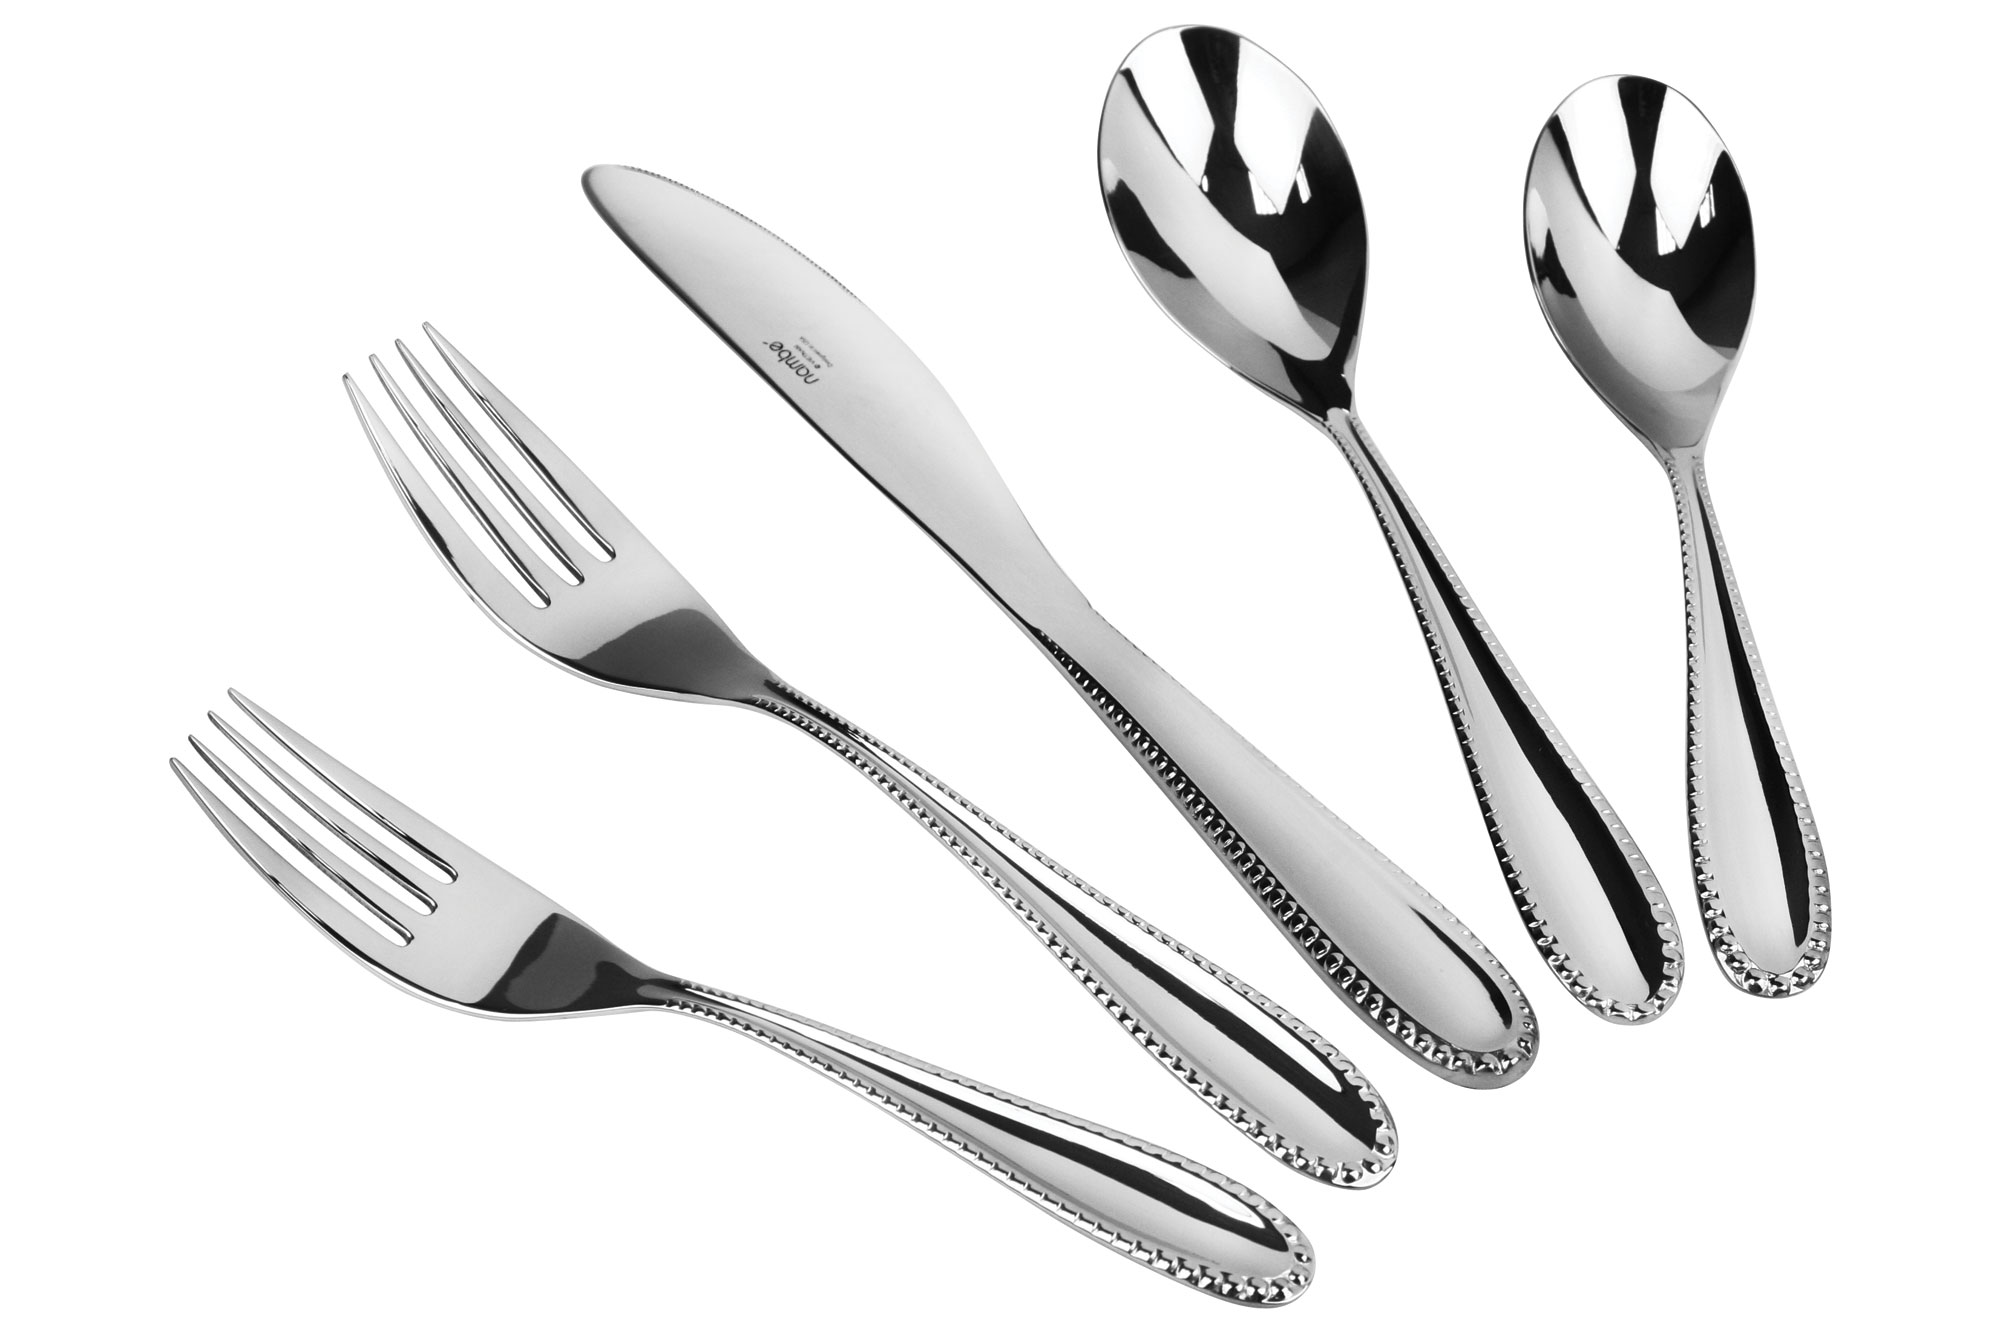 nambe maeve stainless steel flatware set piece  cutlery and more - piece